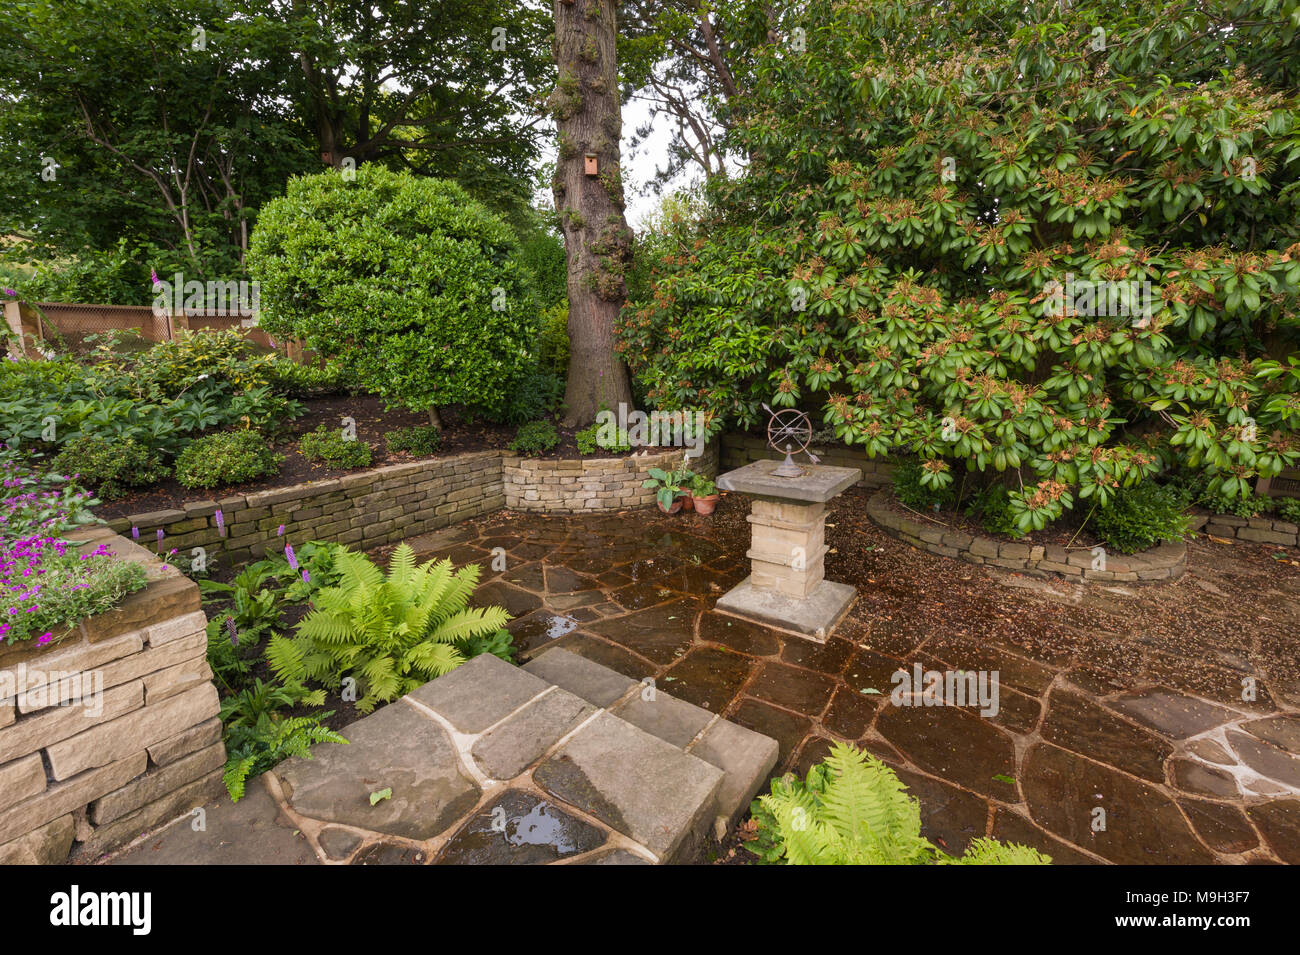 Small shady paved terraced area with stone sundial, raised ... on stone walkways ideas, stone fireplaces ideas, stone fencing ideas, stone fire pits ideas, stone paths ideas, stone shed ideas, stone mulch ideas,